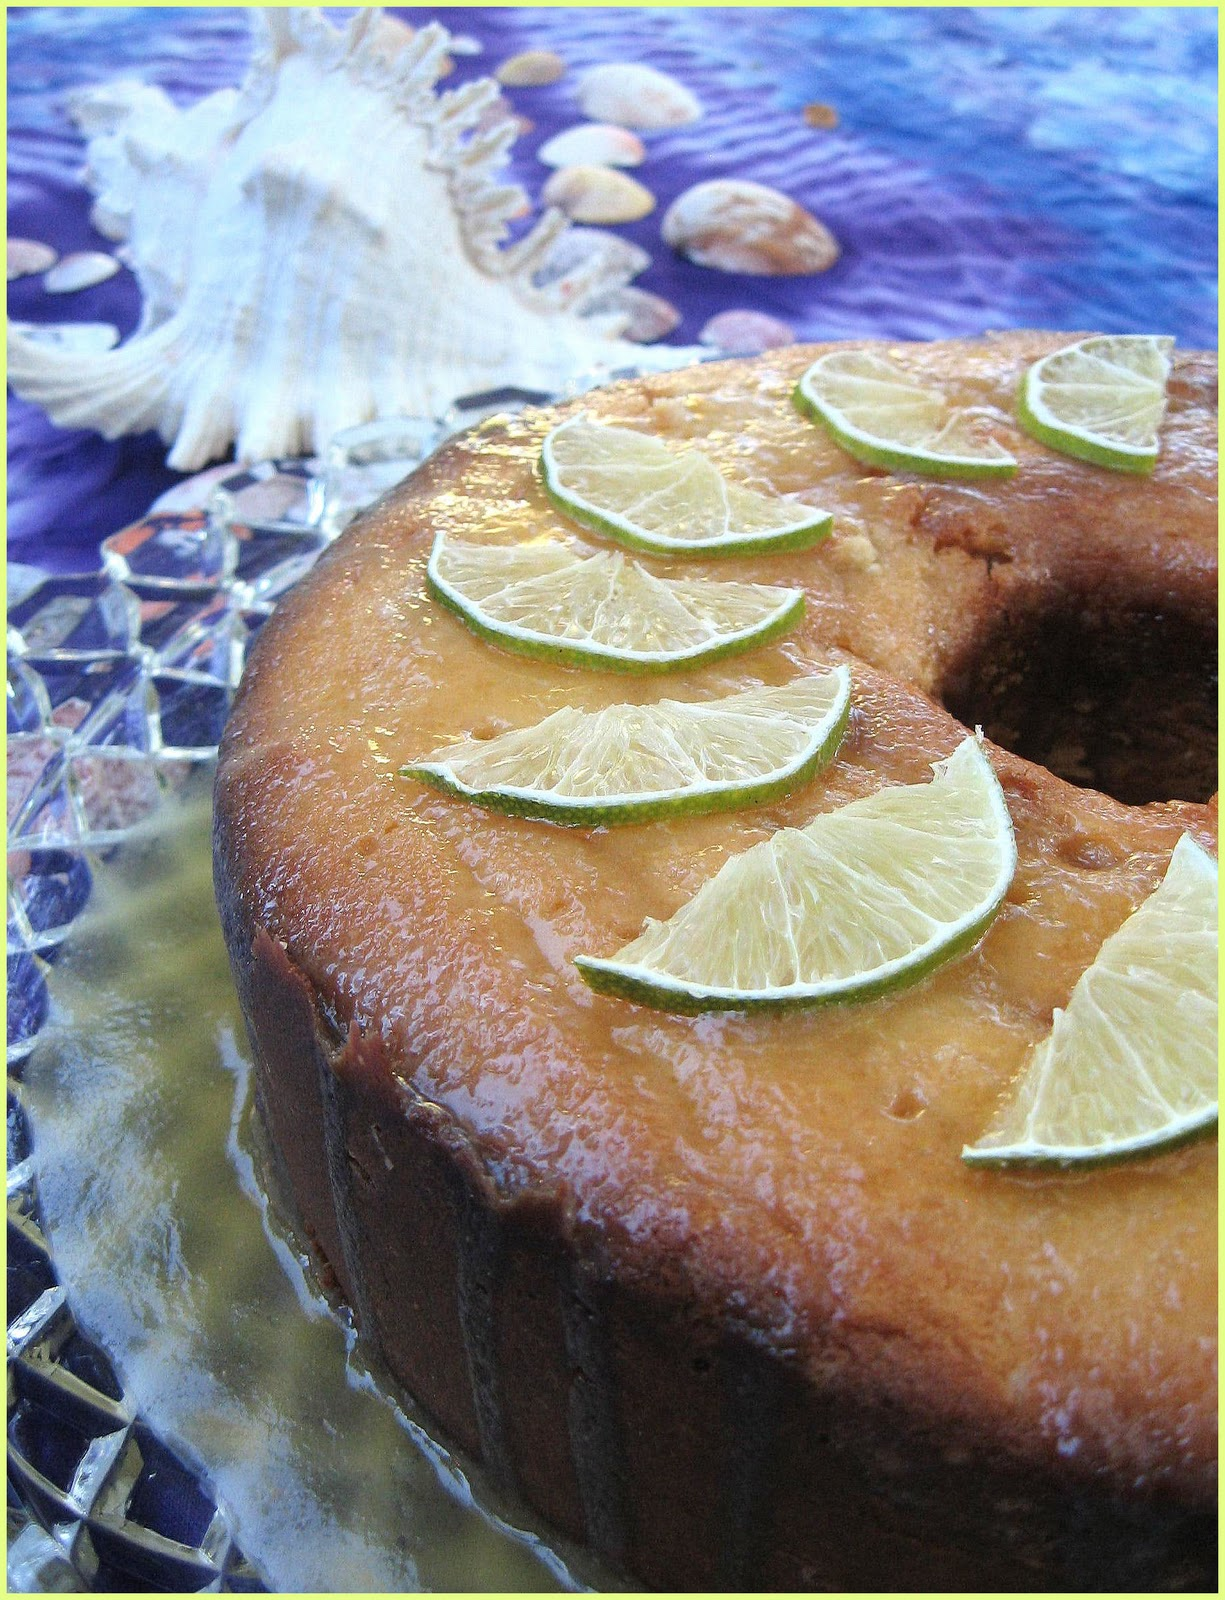 Foodalution: Tart and Tangy Key Lime Pound Cake